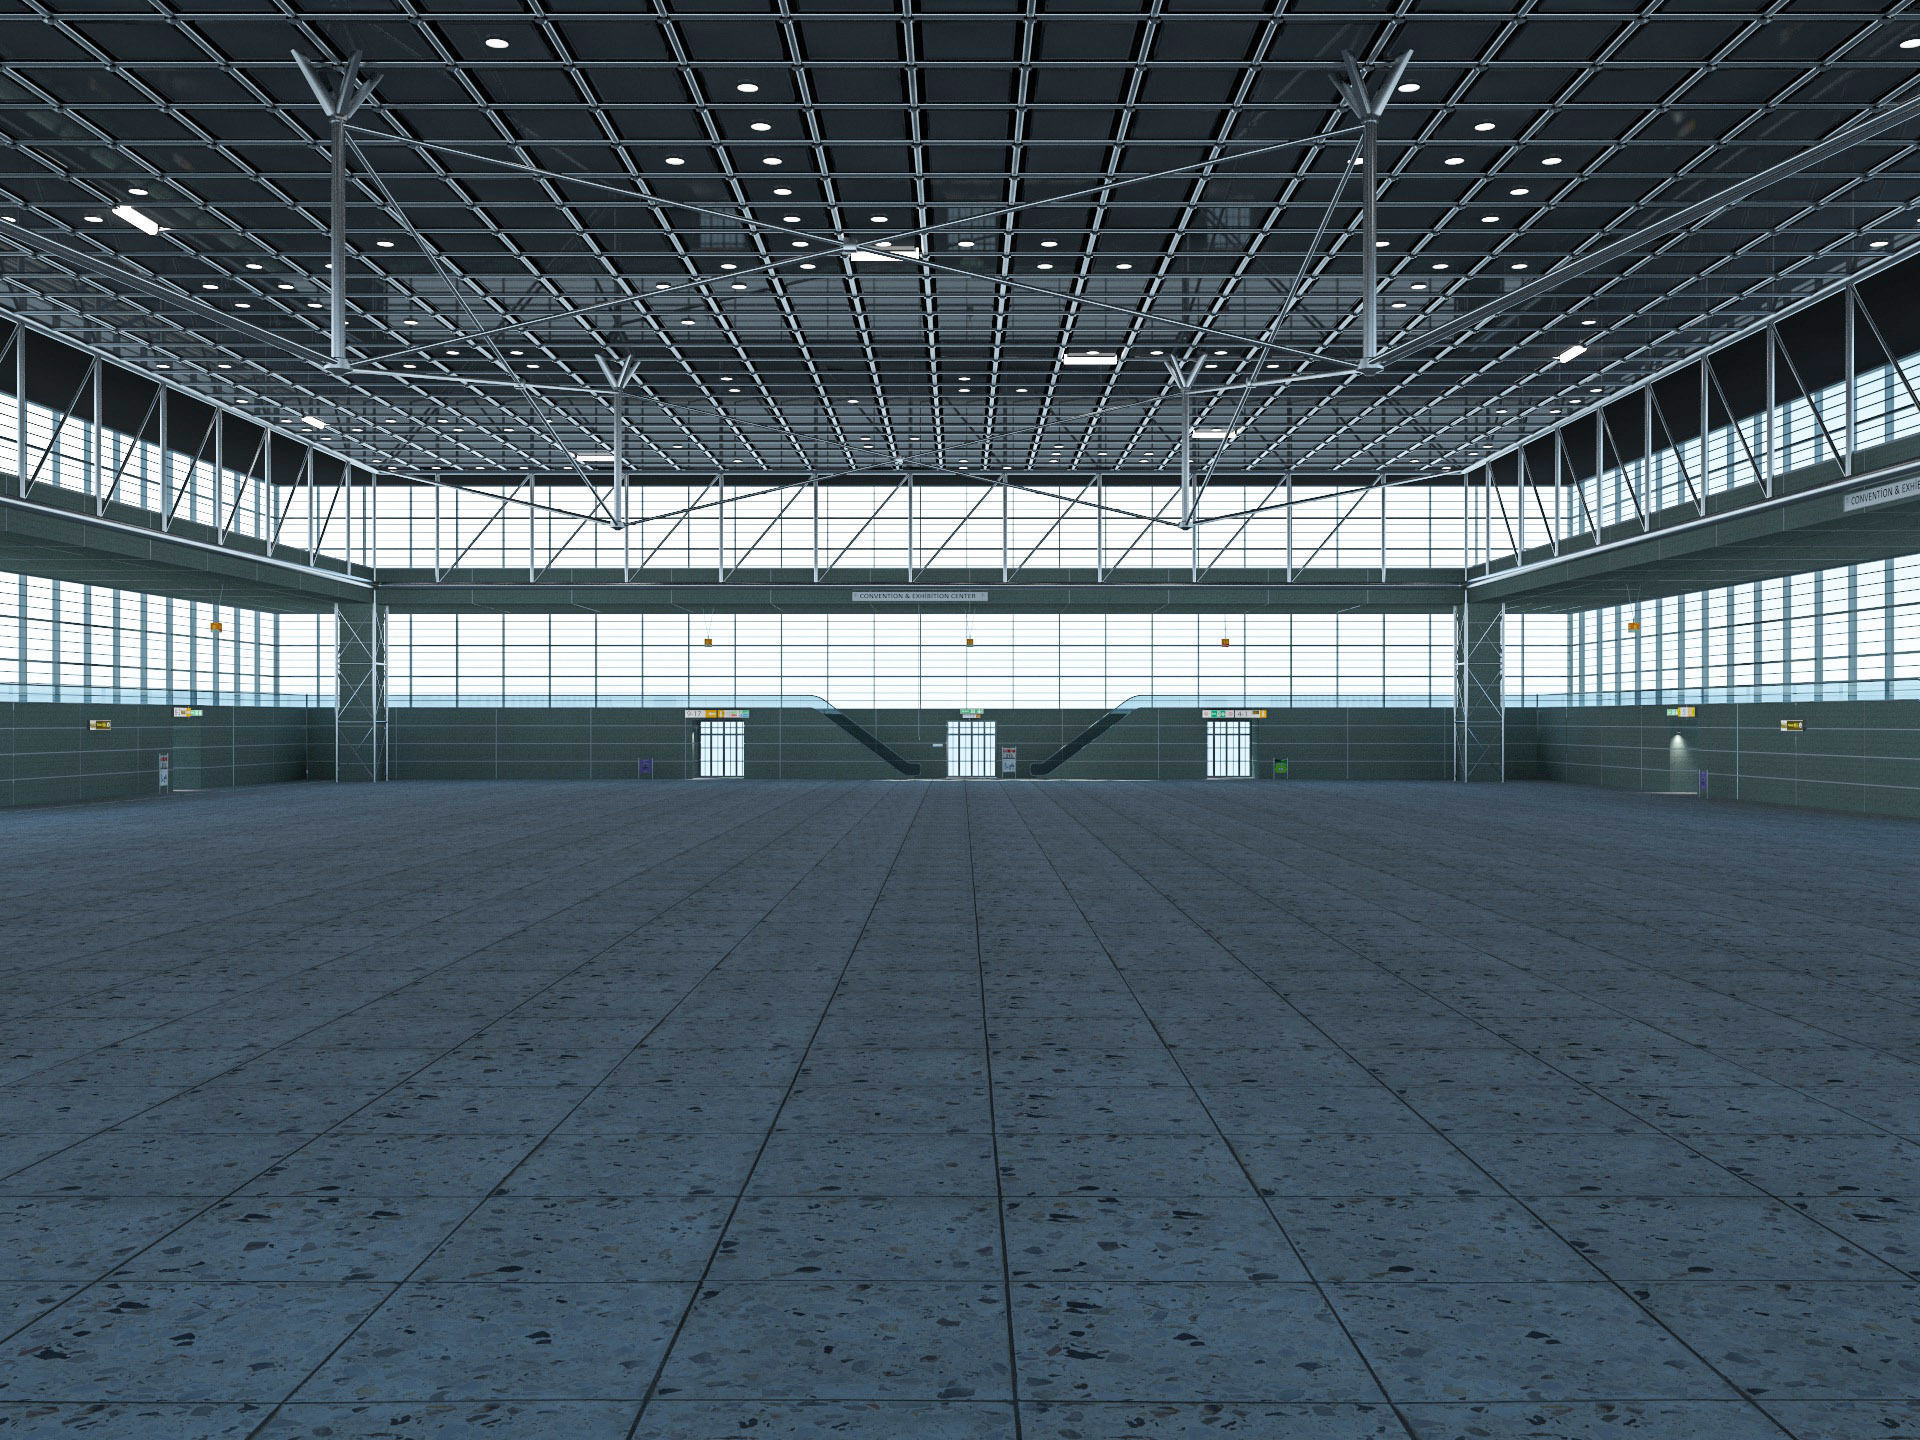 Exhibition Hall interior and exterior 23